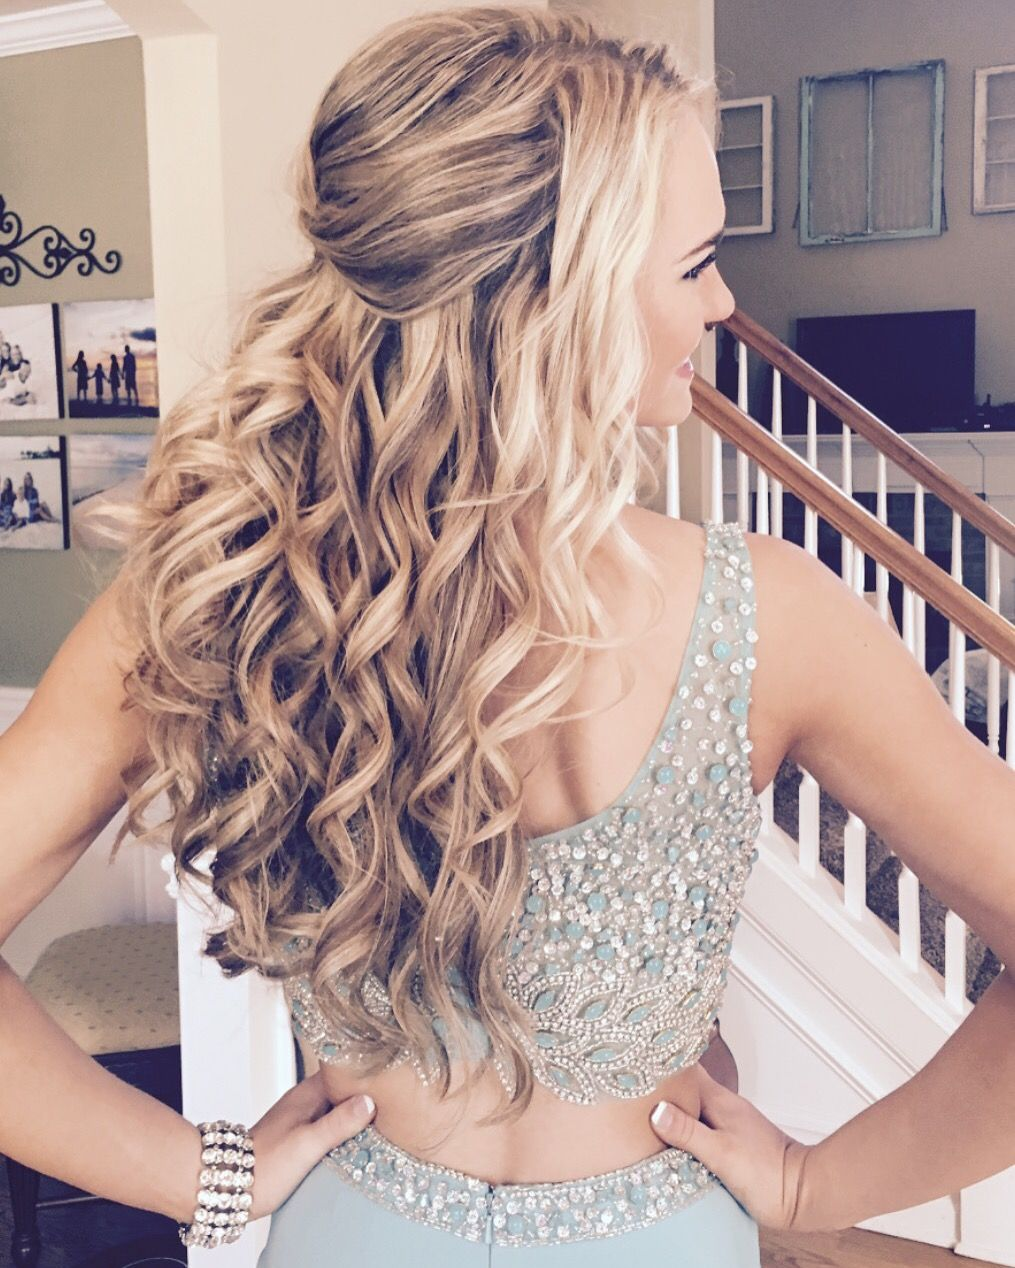 Perfect down do formal hair style by formalfaces nails